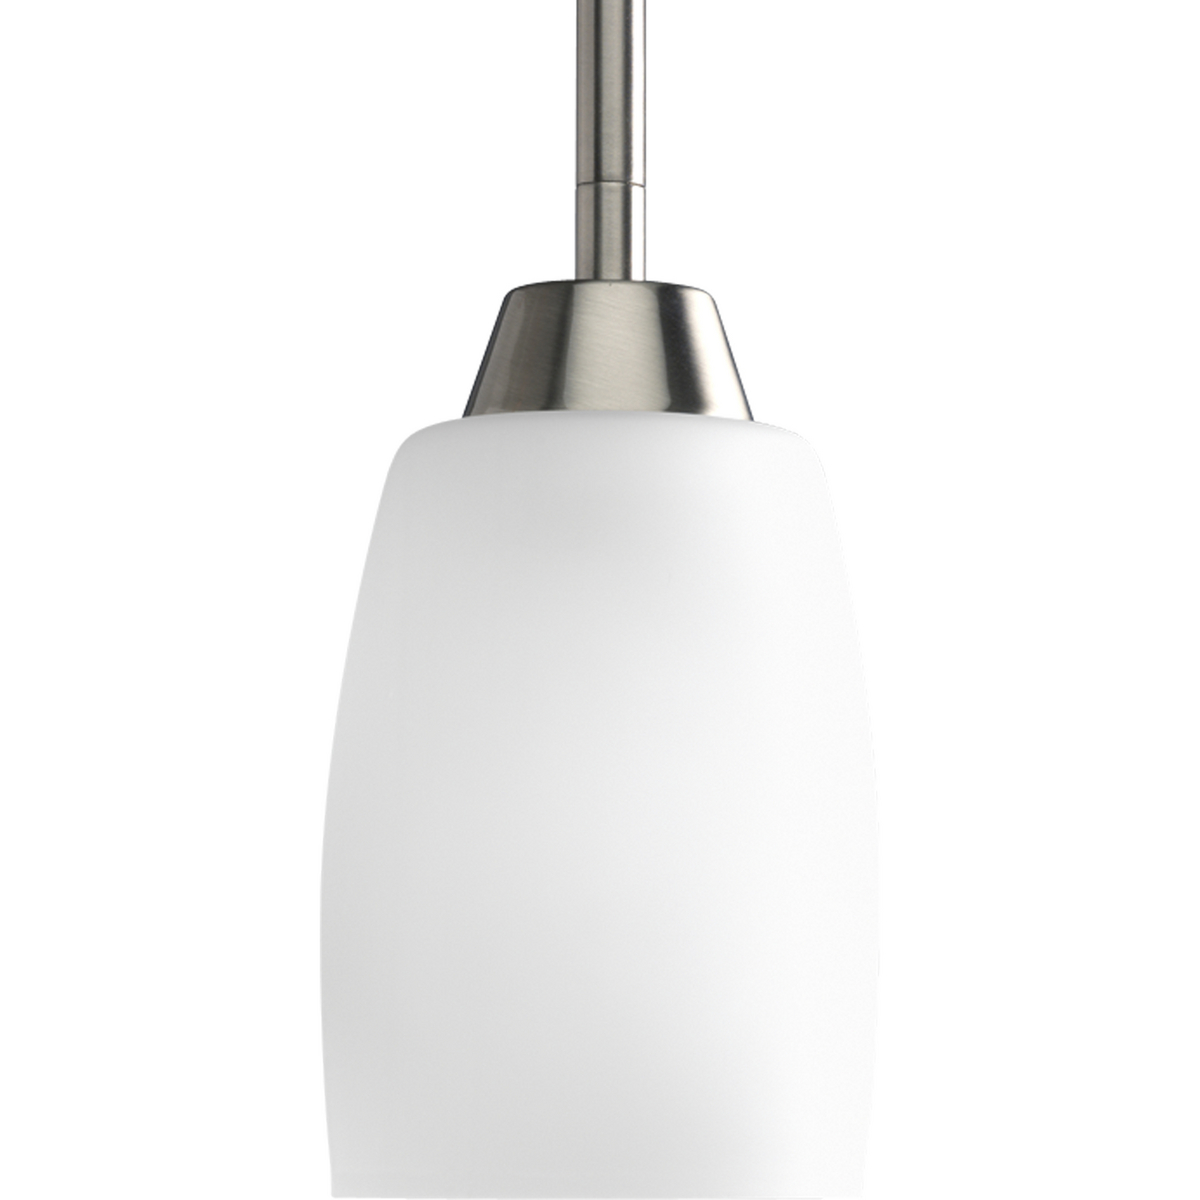 PRO P5108-09 1X100M Brushed Nickel Etched Glass Wisten Mini Pendant